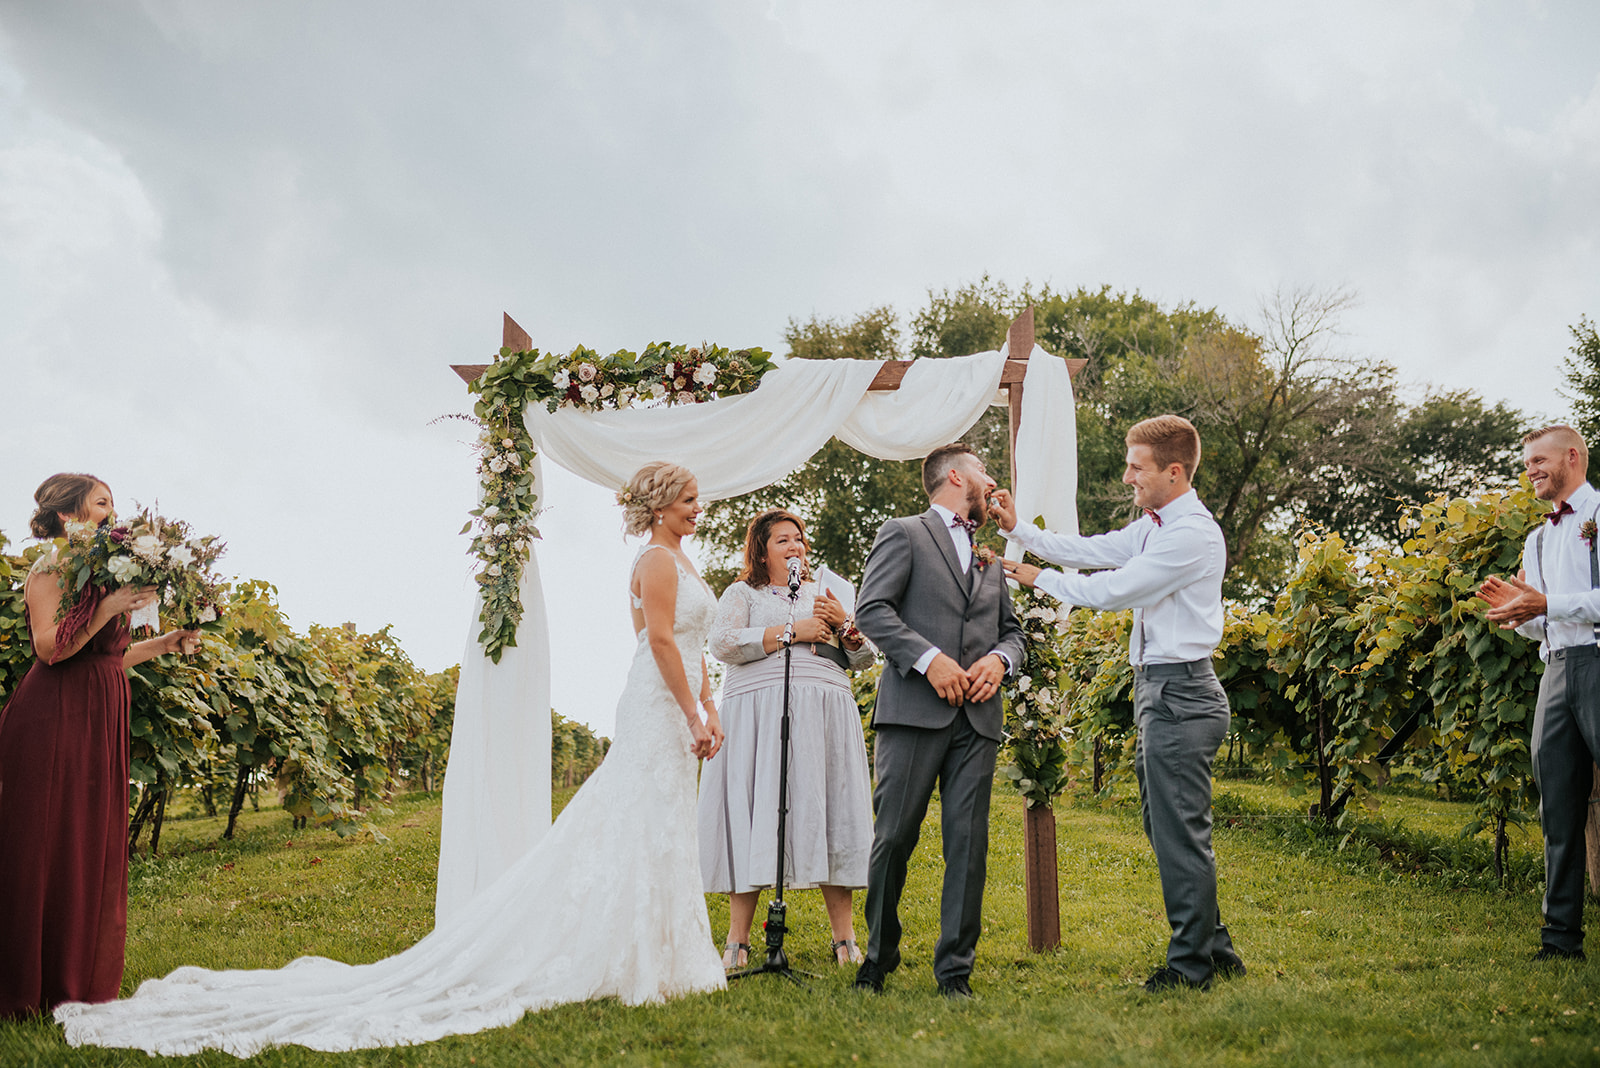 overthevineswisconsinwedding_0680.jpg